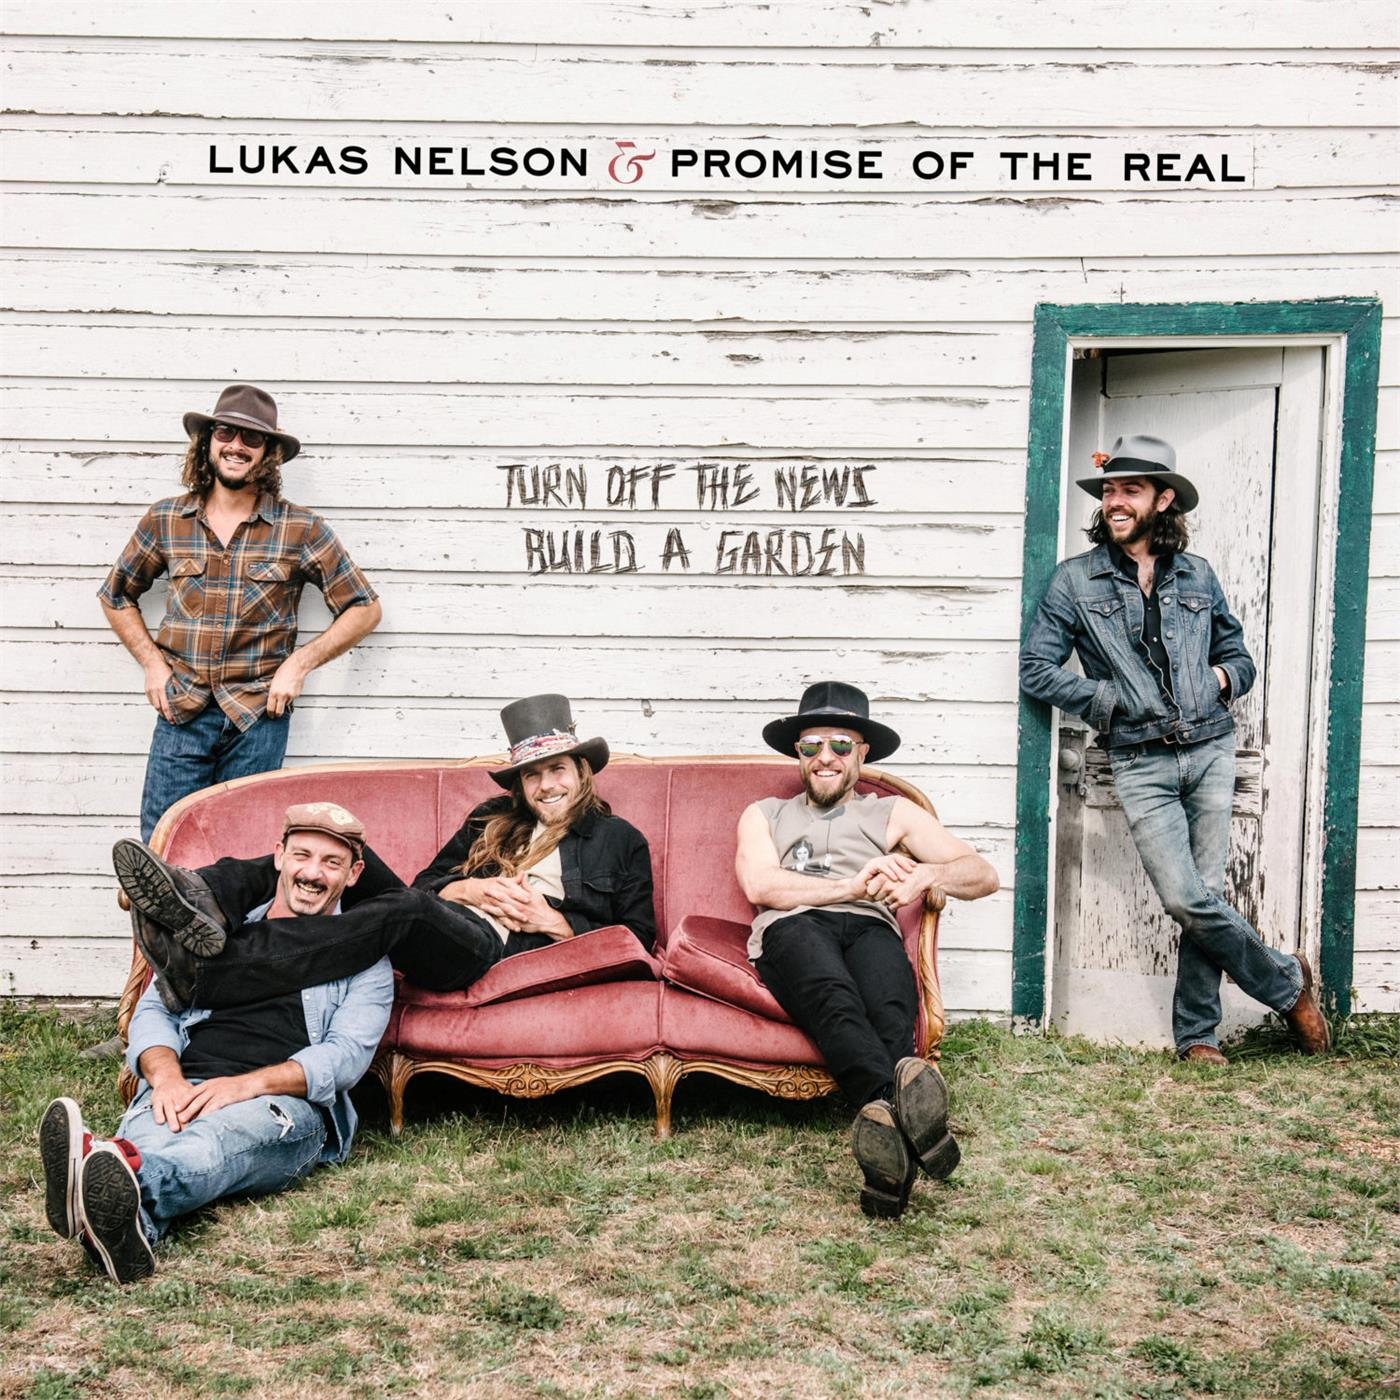 0888072095205 Concord  Lukas Nelson & Promise of The Real Turn Off The News (Build A Garden) (2LP)